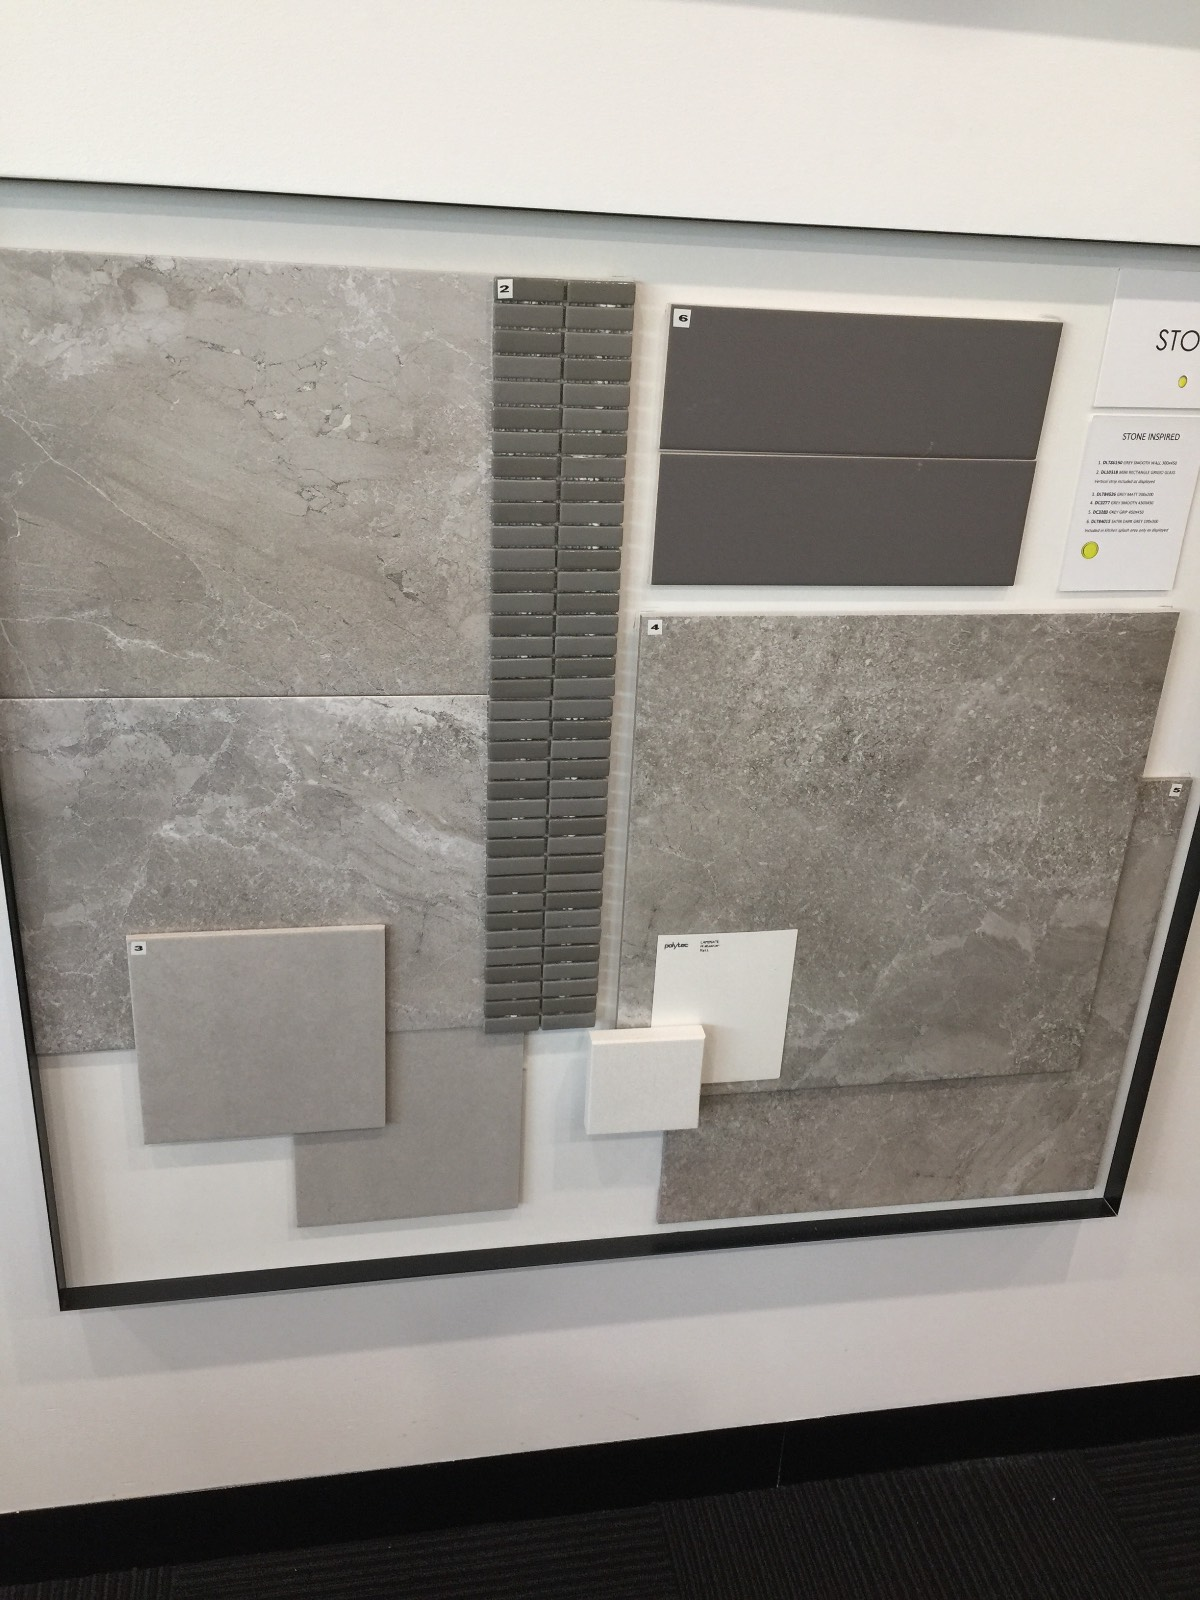 Stone inspired tiles - Di lorenzo (Wisdom homes)